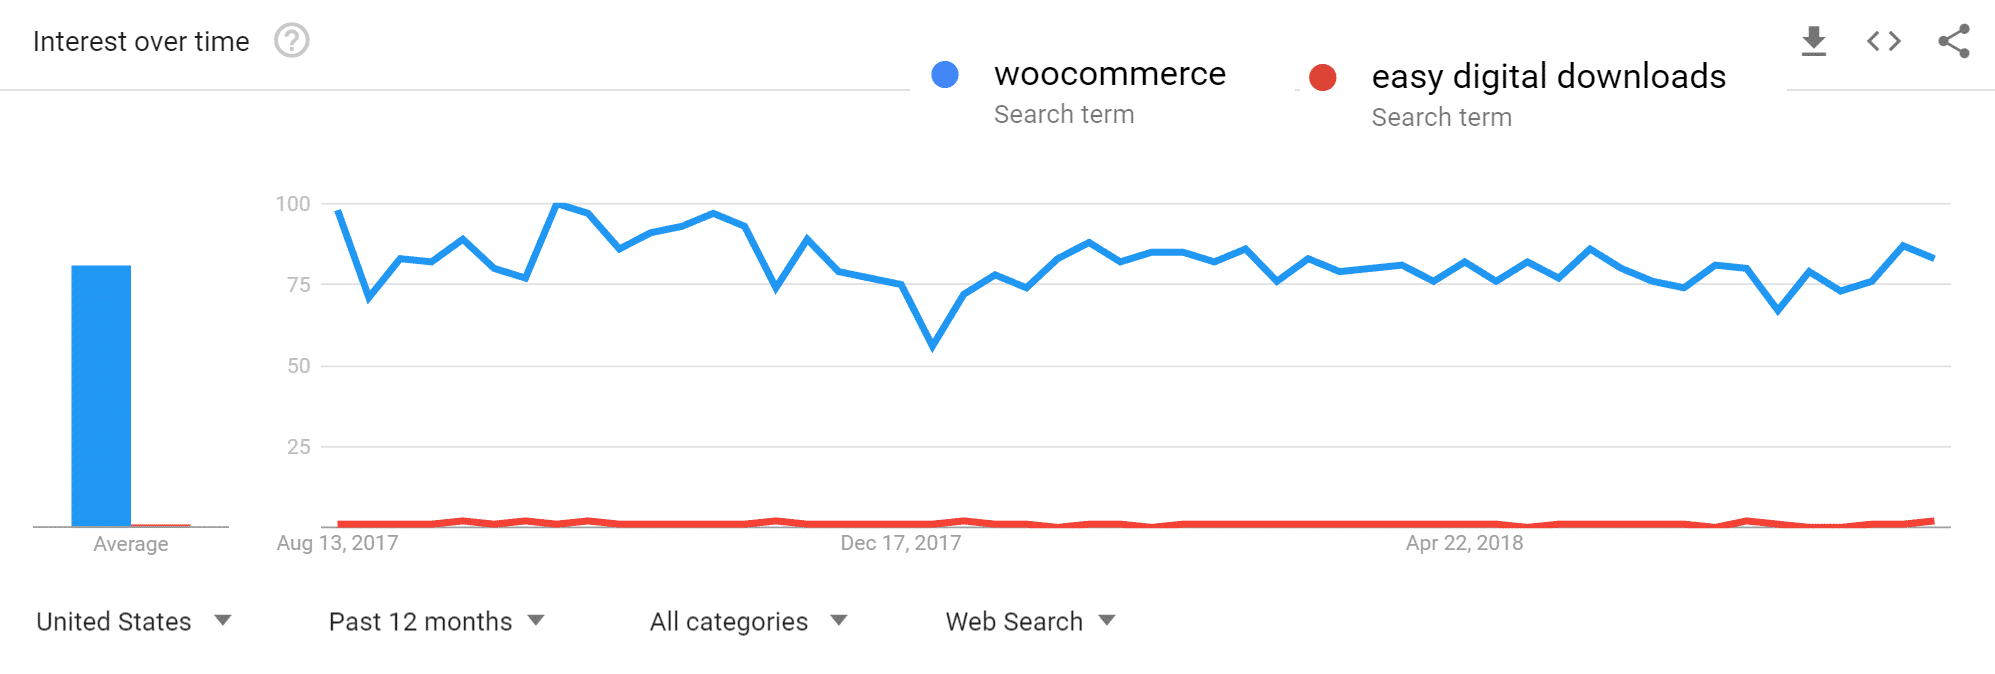 Google trends - WooCommerce vs Easy Digital Downloads